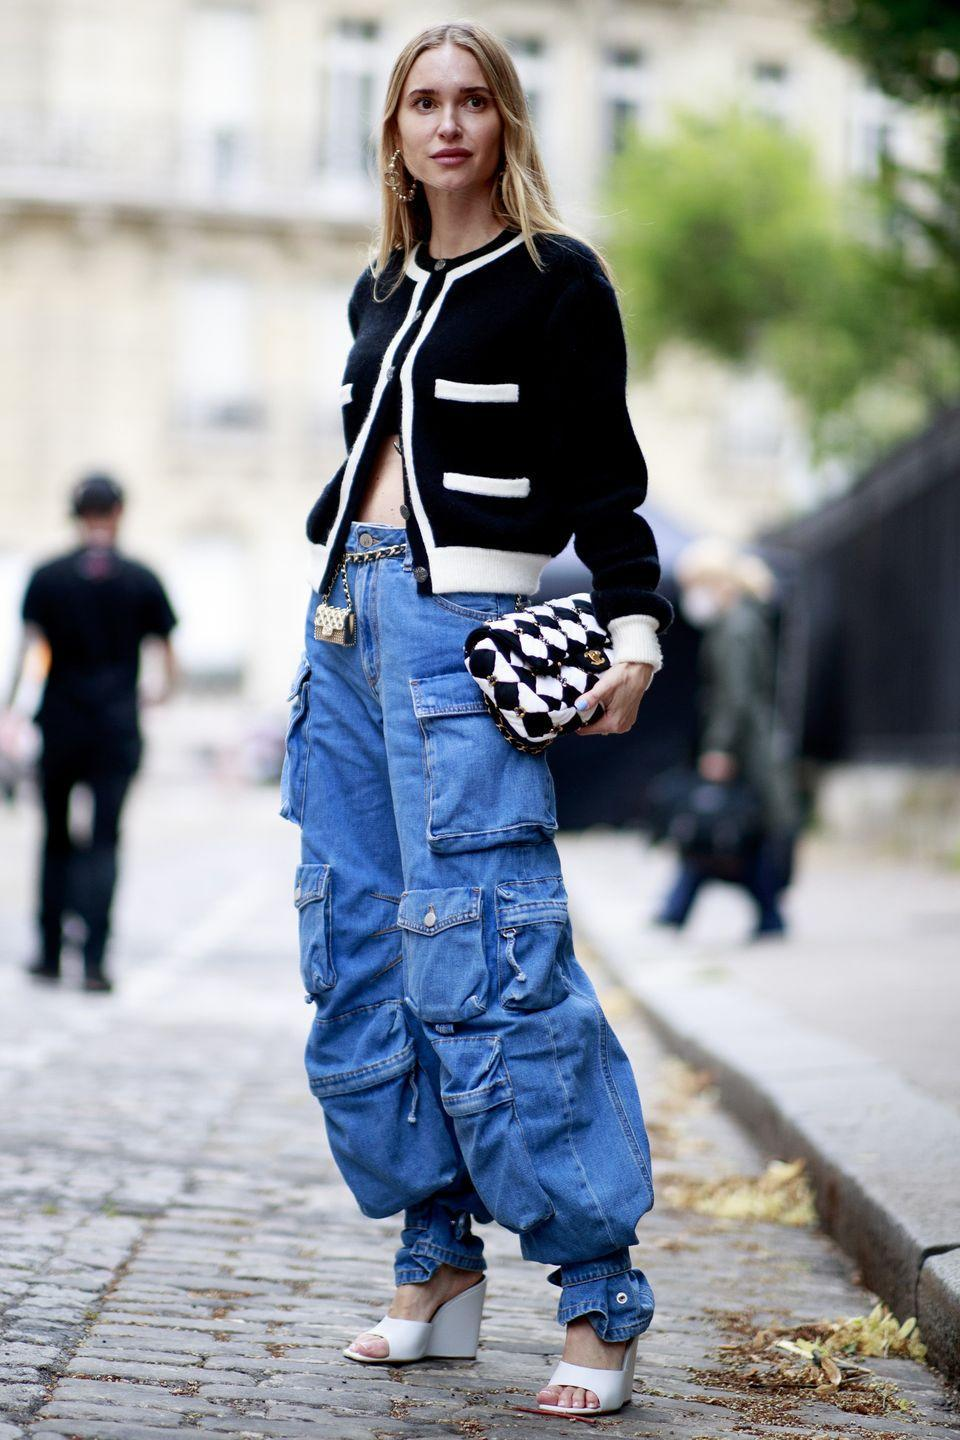 <p>Take style cues from Pernille Teisbaek who was pictured outside the Chanel couture show experimenting with different aesthetics in one look. Her playful mix of a smart Chanel jacket and casual baggy jeans is the perfect balance of tailored meets cool. </p>